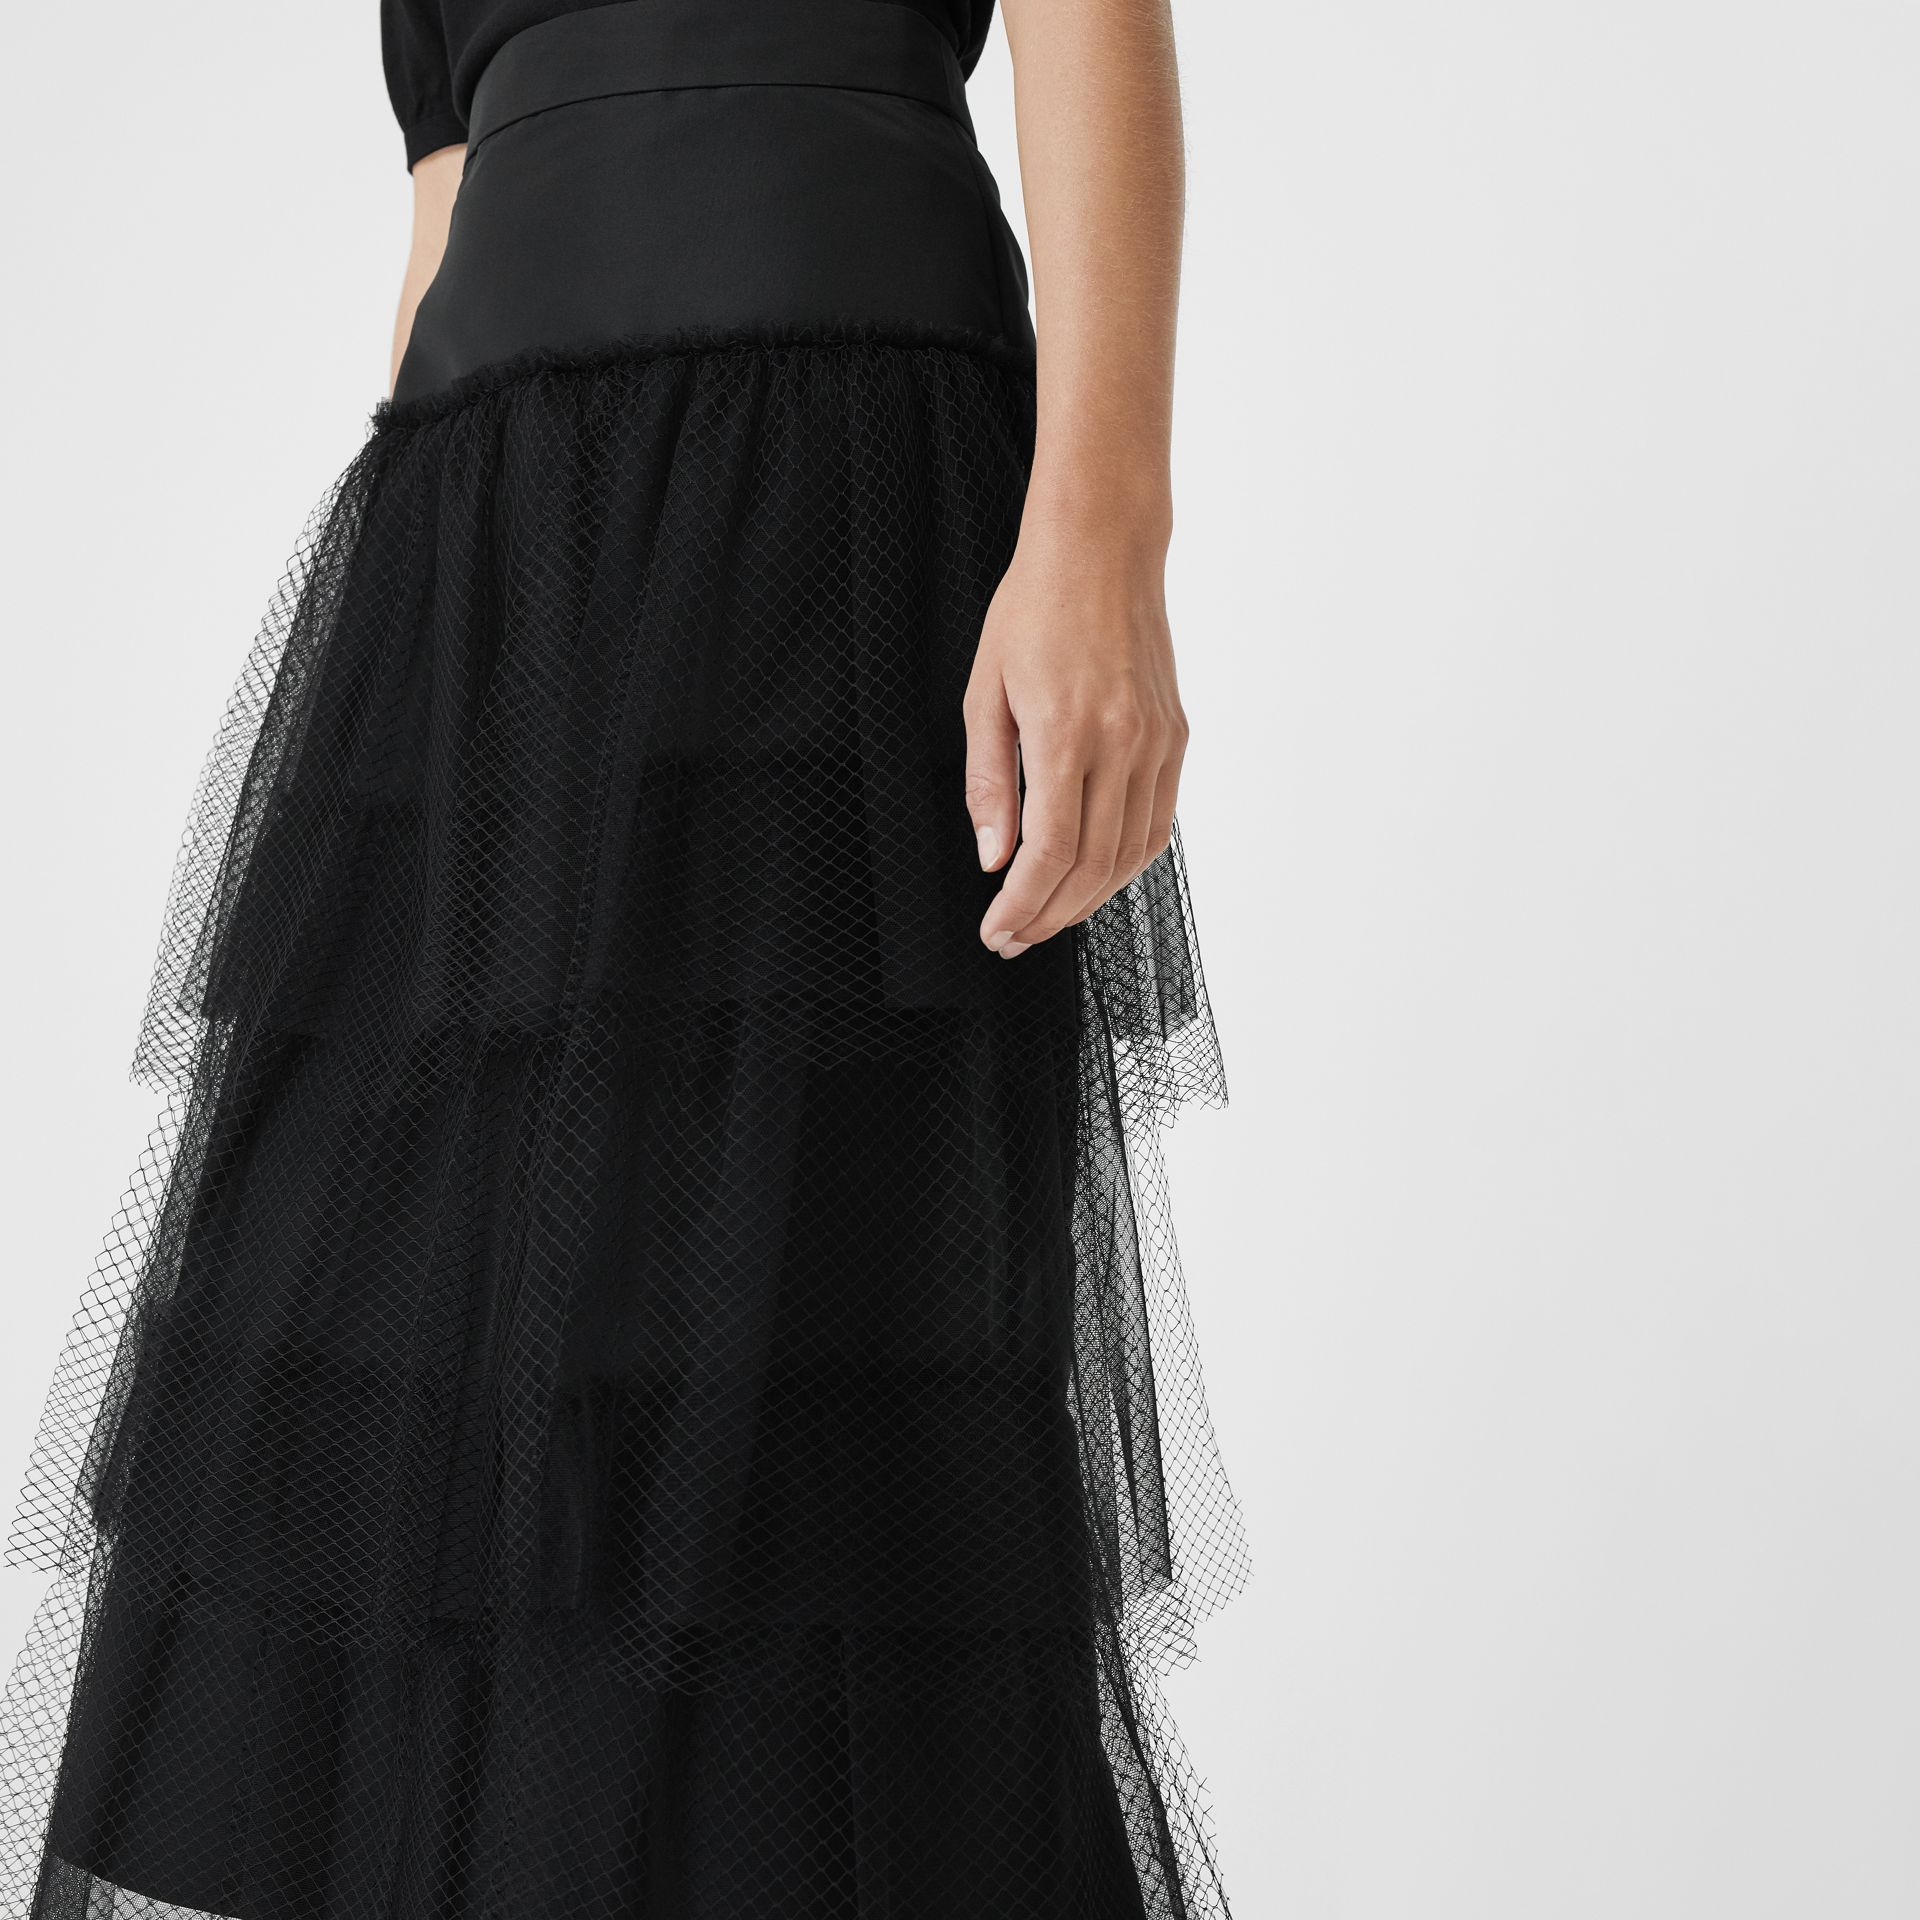 Tiered Tulle A-line Skirt in Black - Women | Burberry Canada - gallery image 1